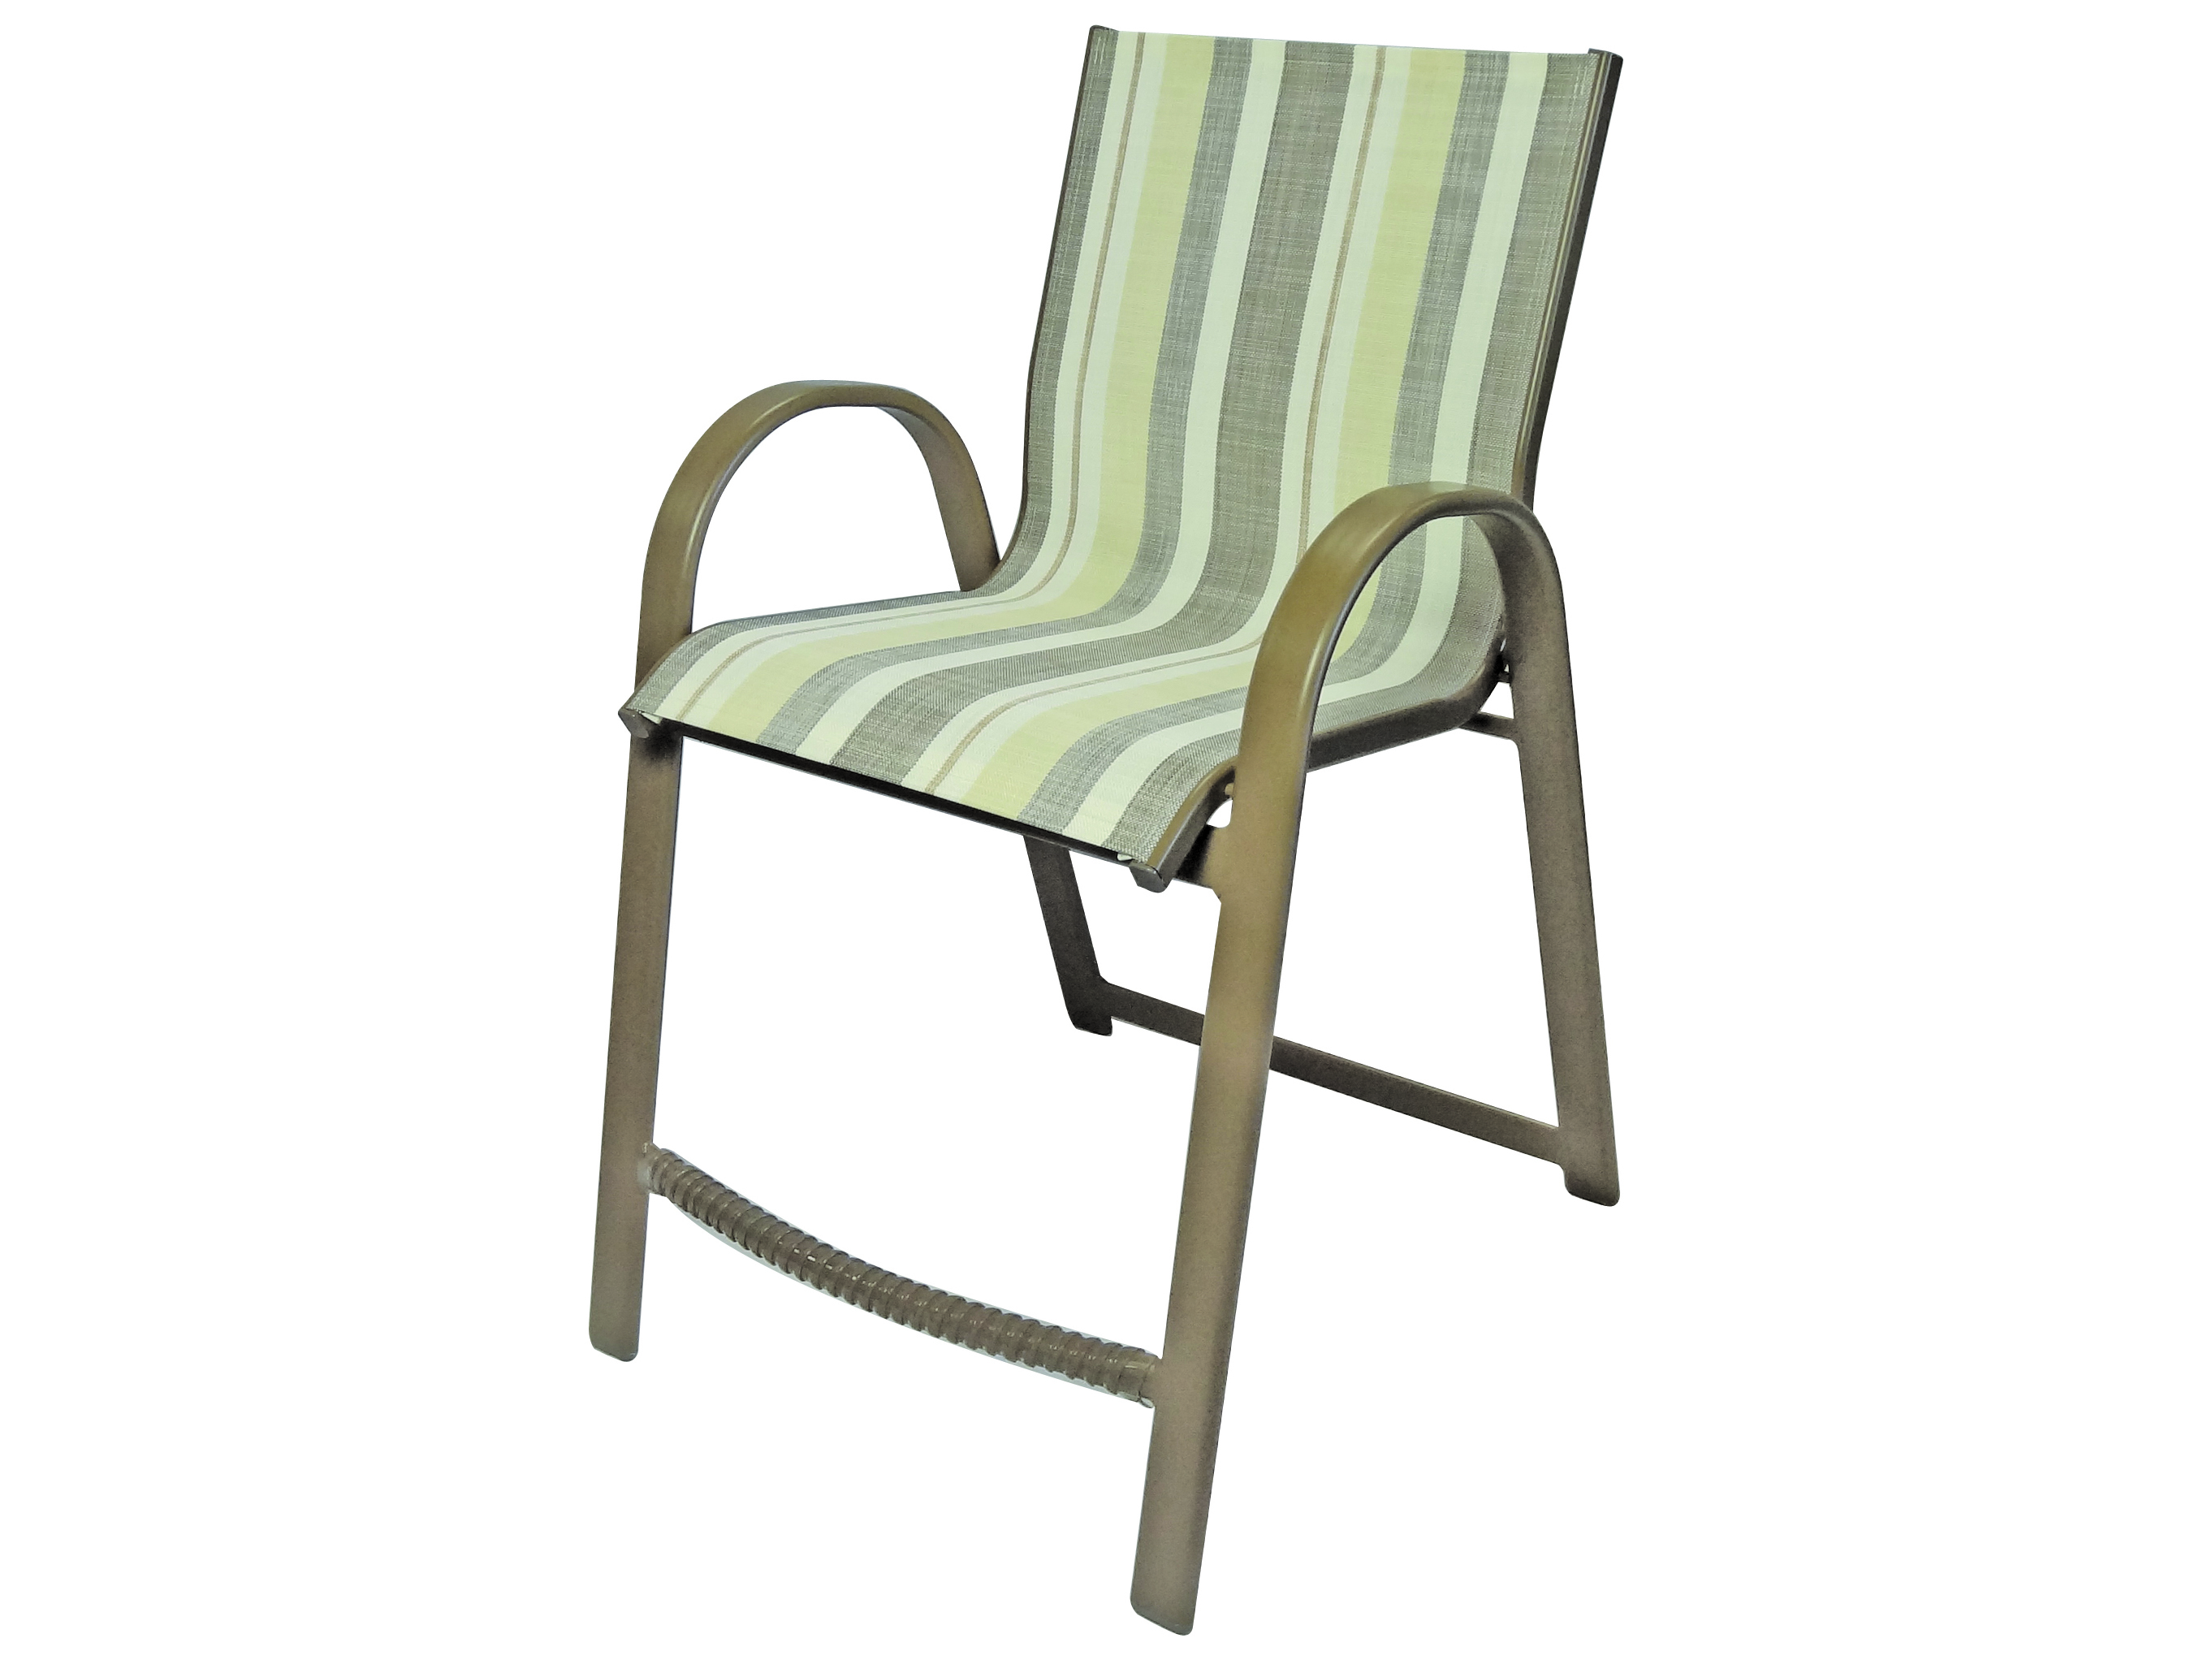 anna slipcover chair collection wedding cover hire barnsley windward design group maria sling aluminum balcony